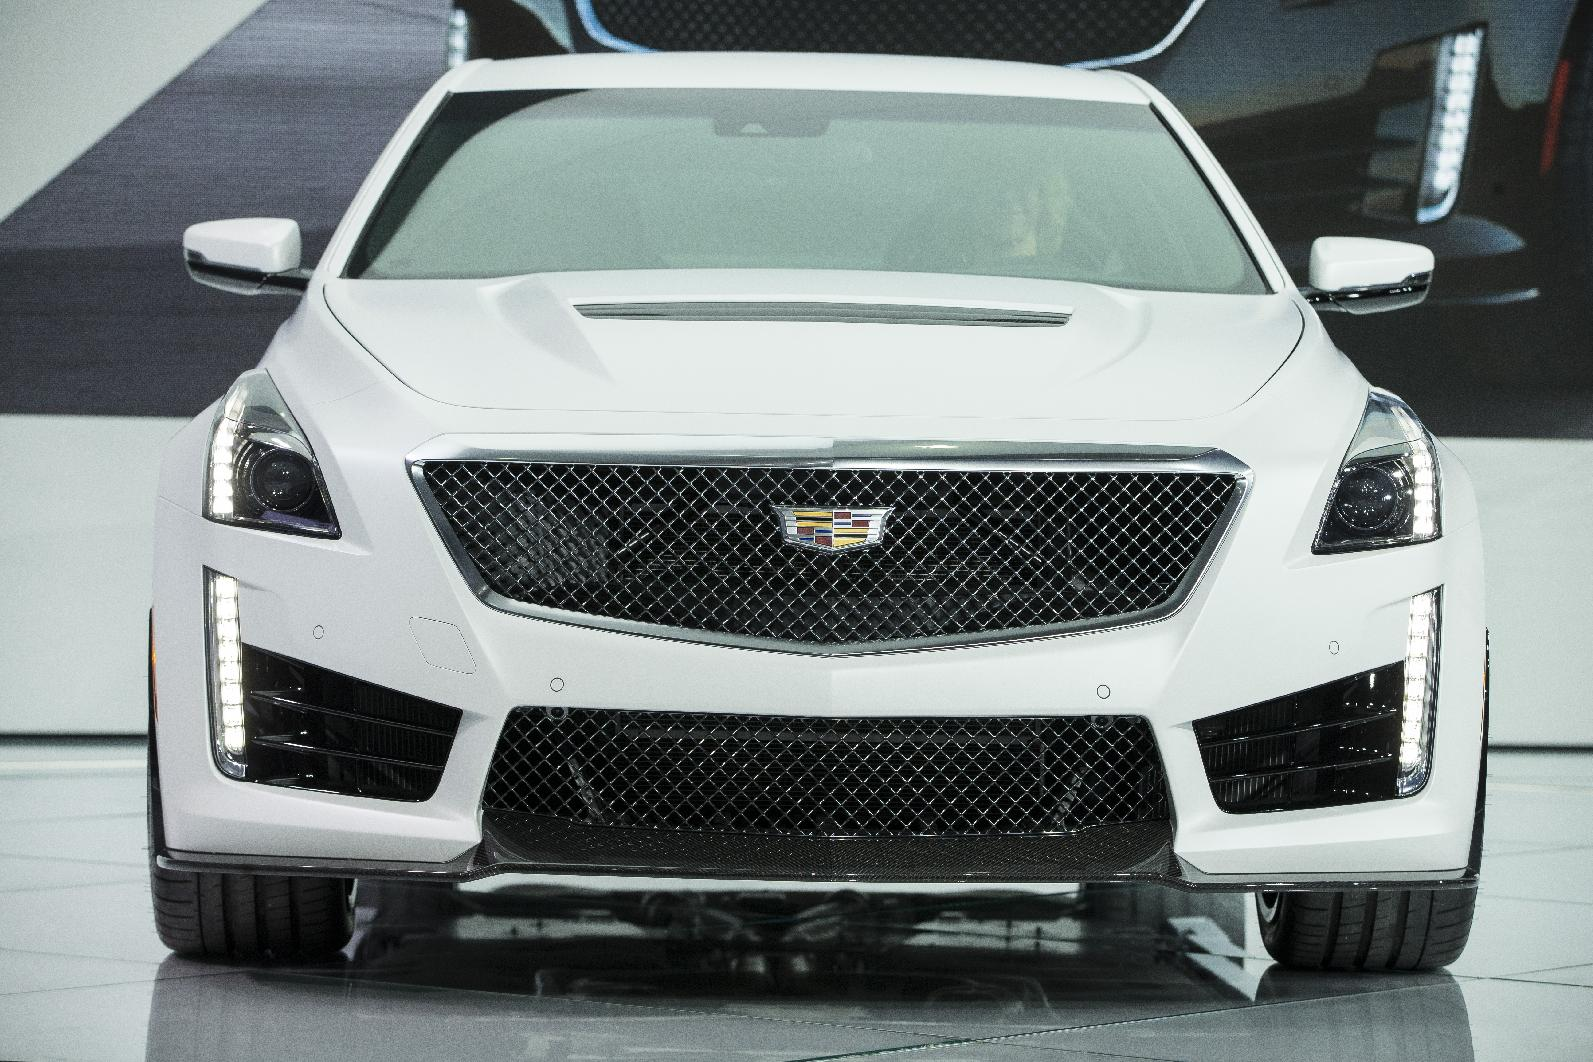 Cadillac unfurls most powerful car in its history